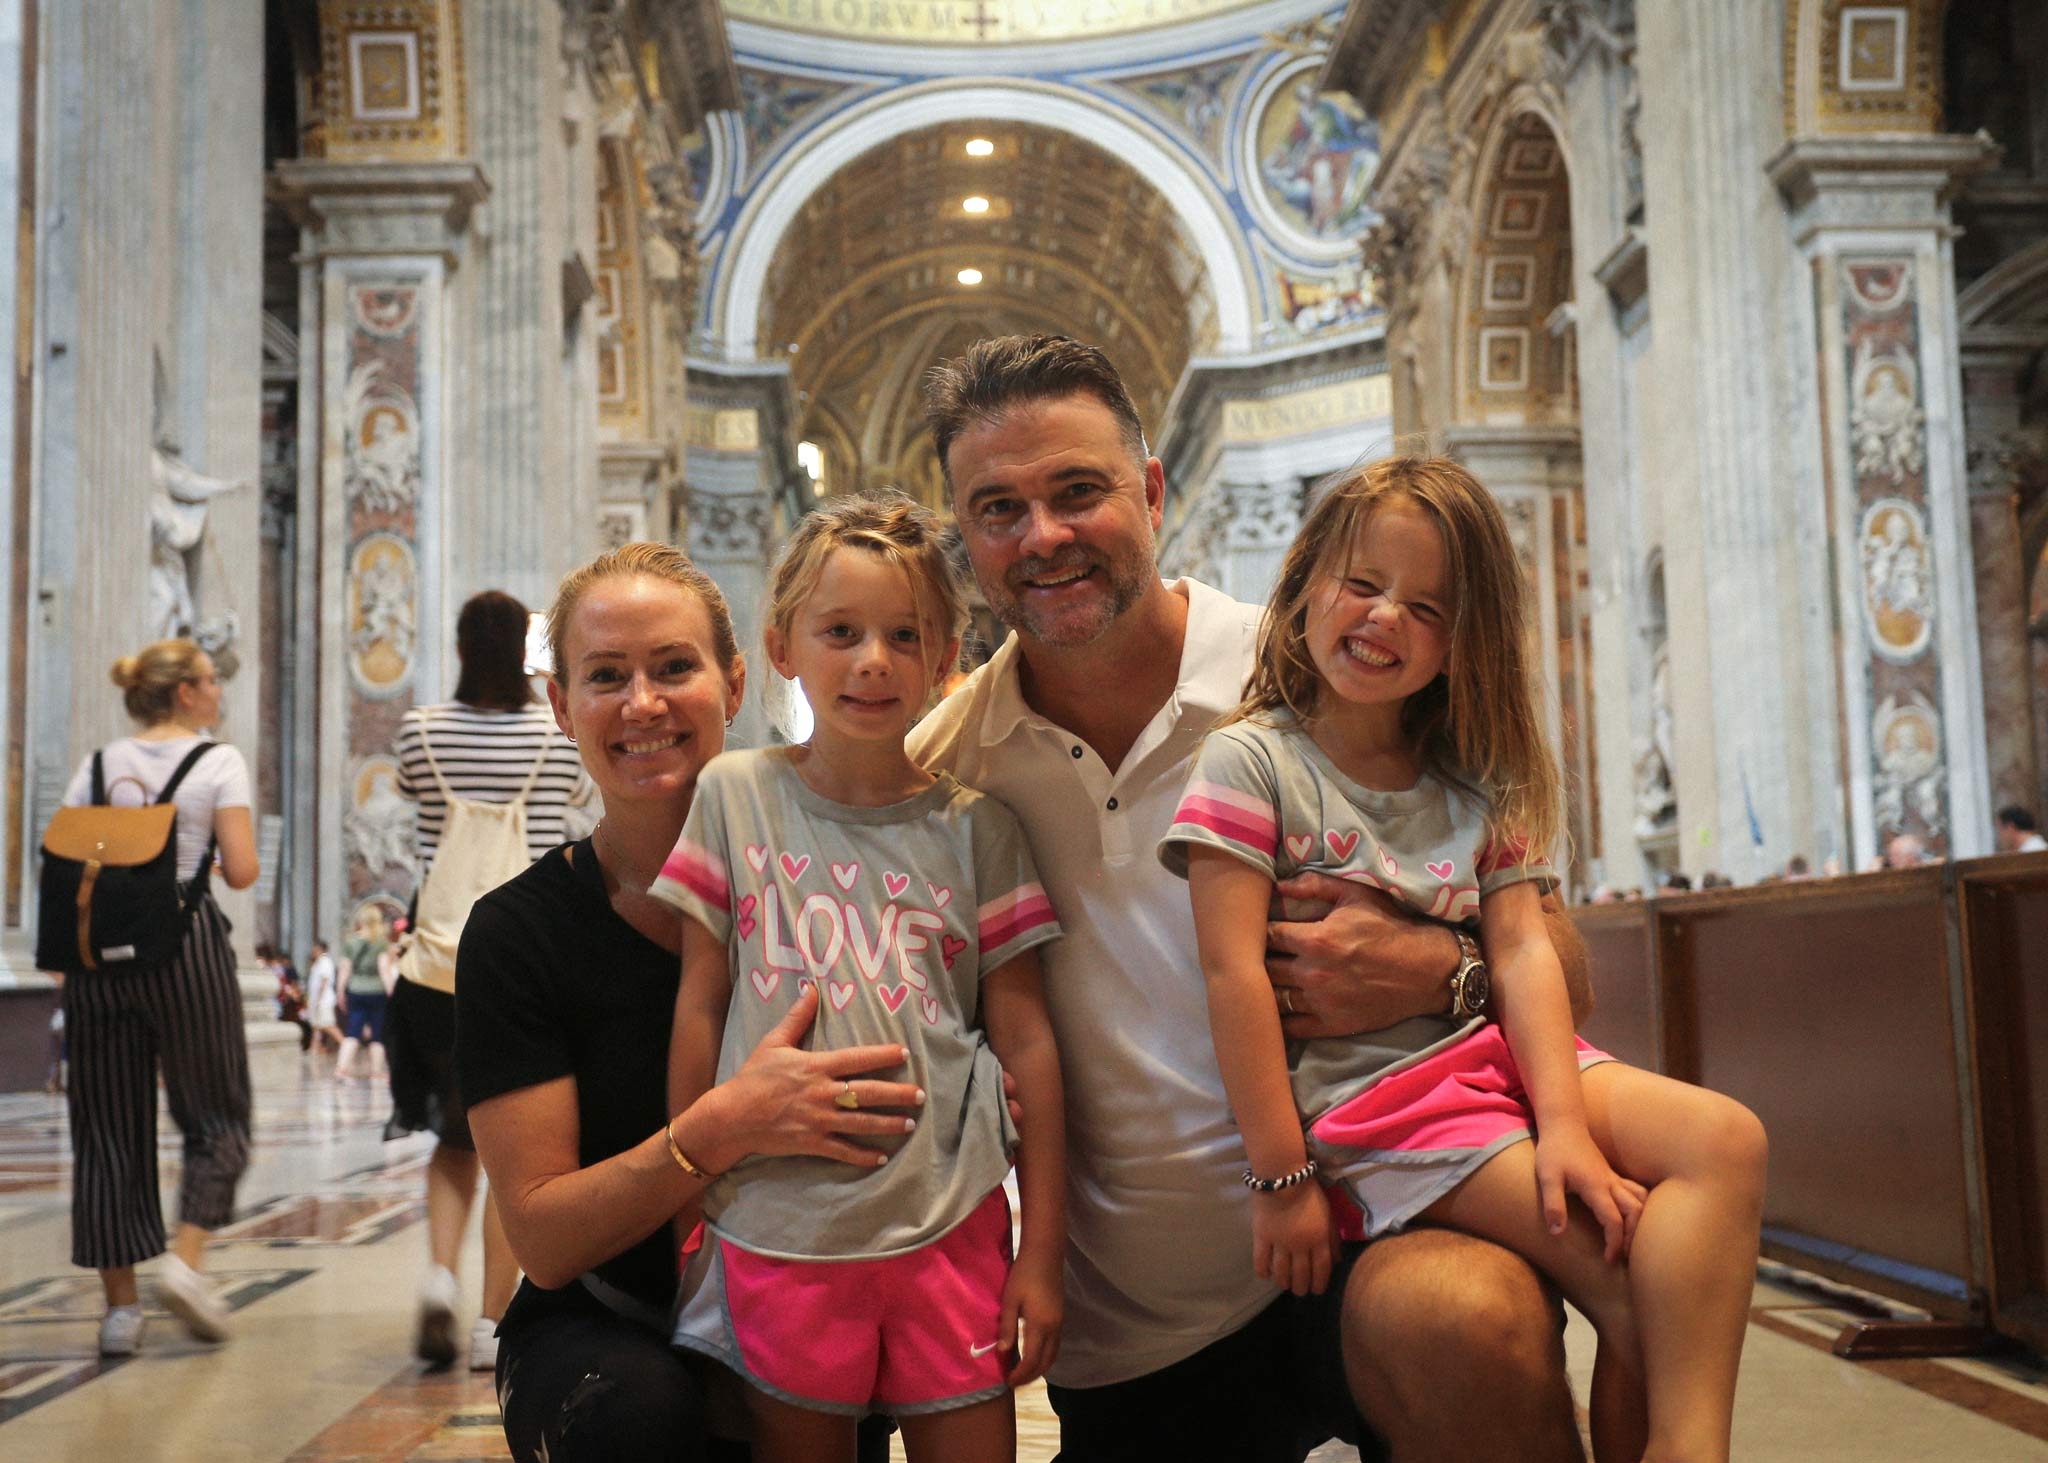 Matthew Mitchell and his wife and two daughters smile for a family photo in an ornate cathedral.